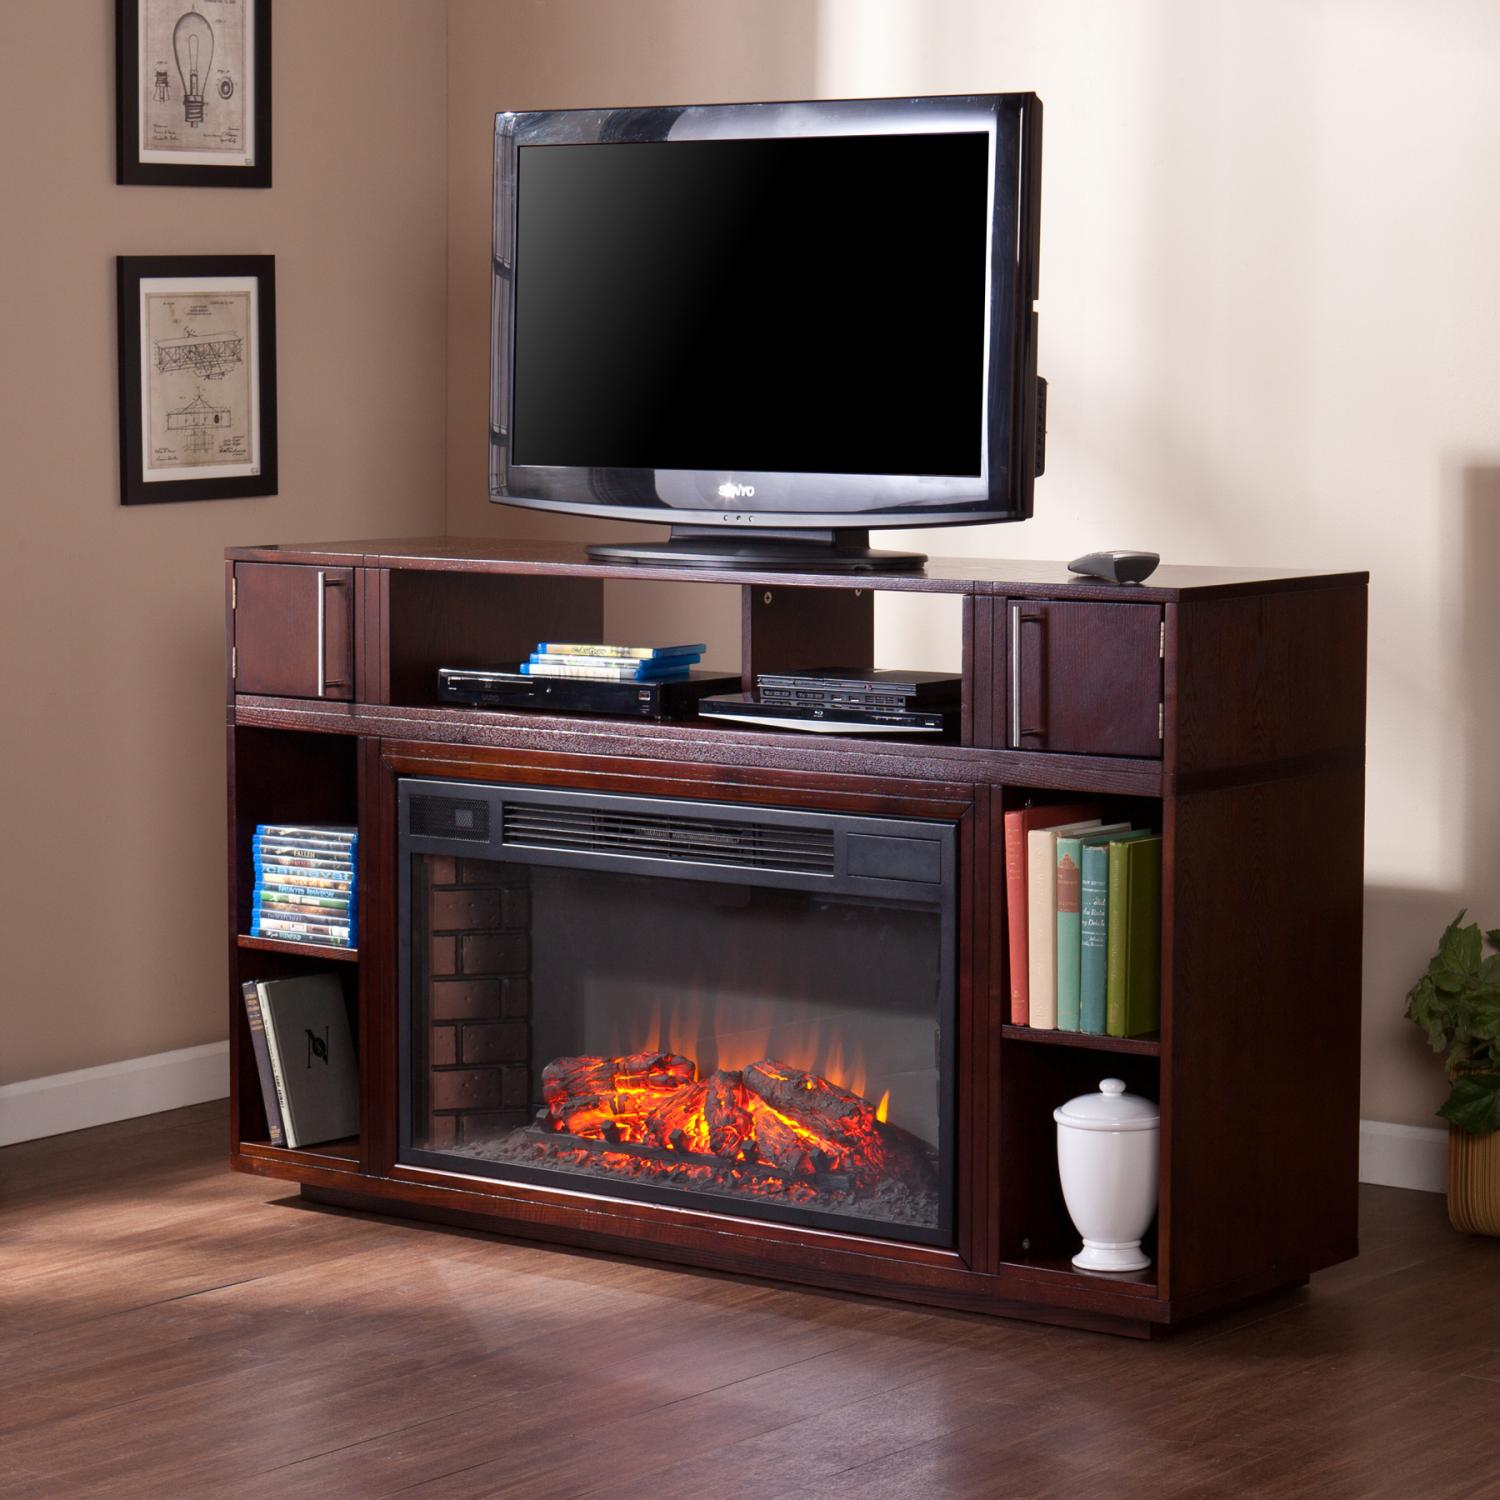 fireplace faux blog magnificent panels and amazing diy creative media center